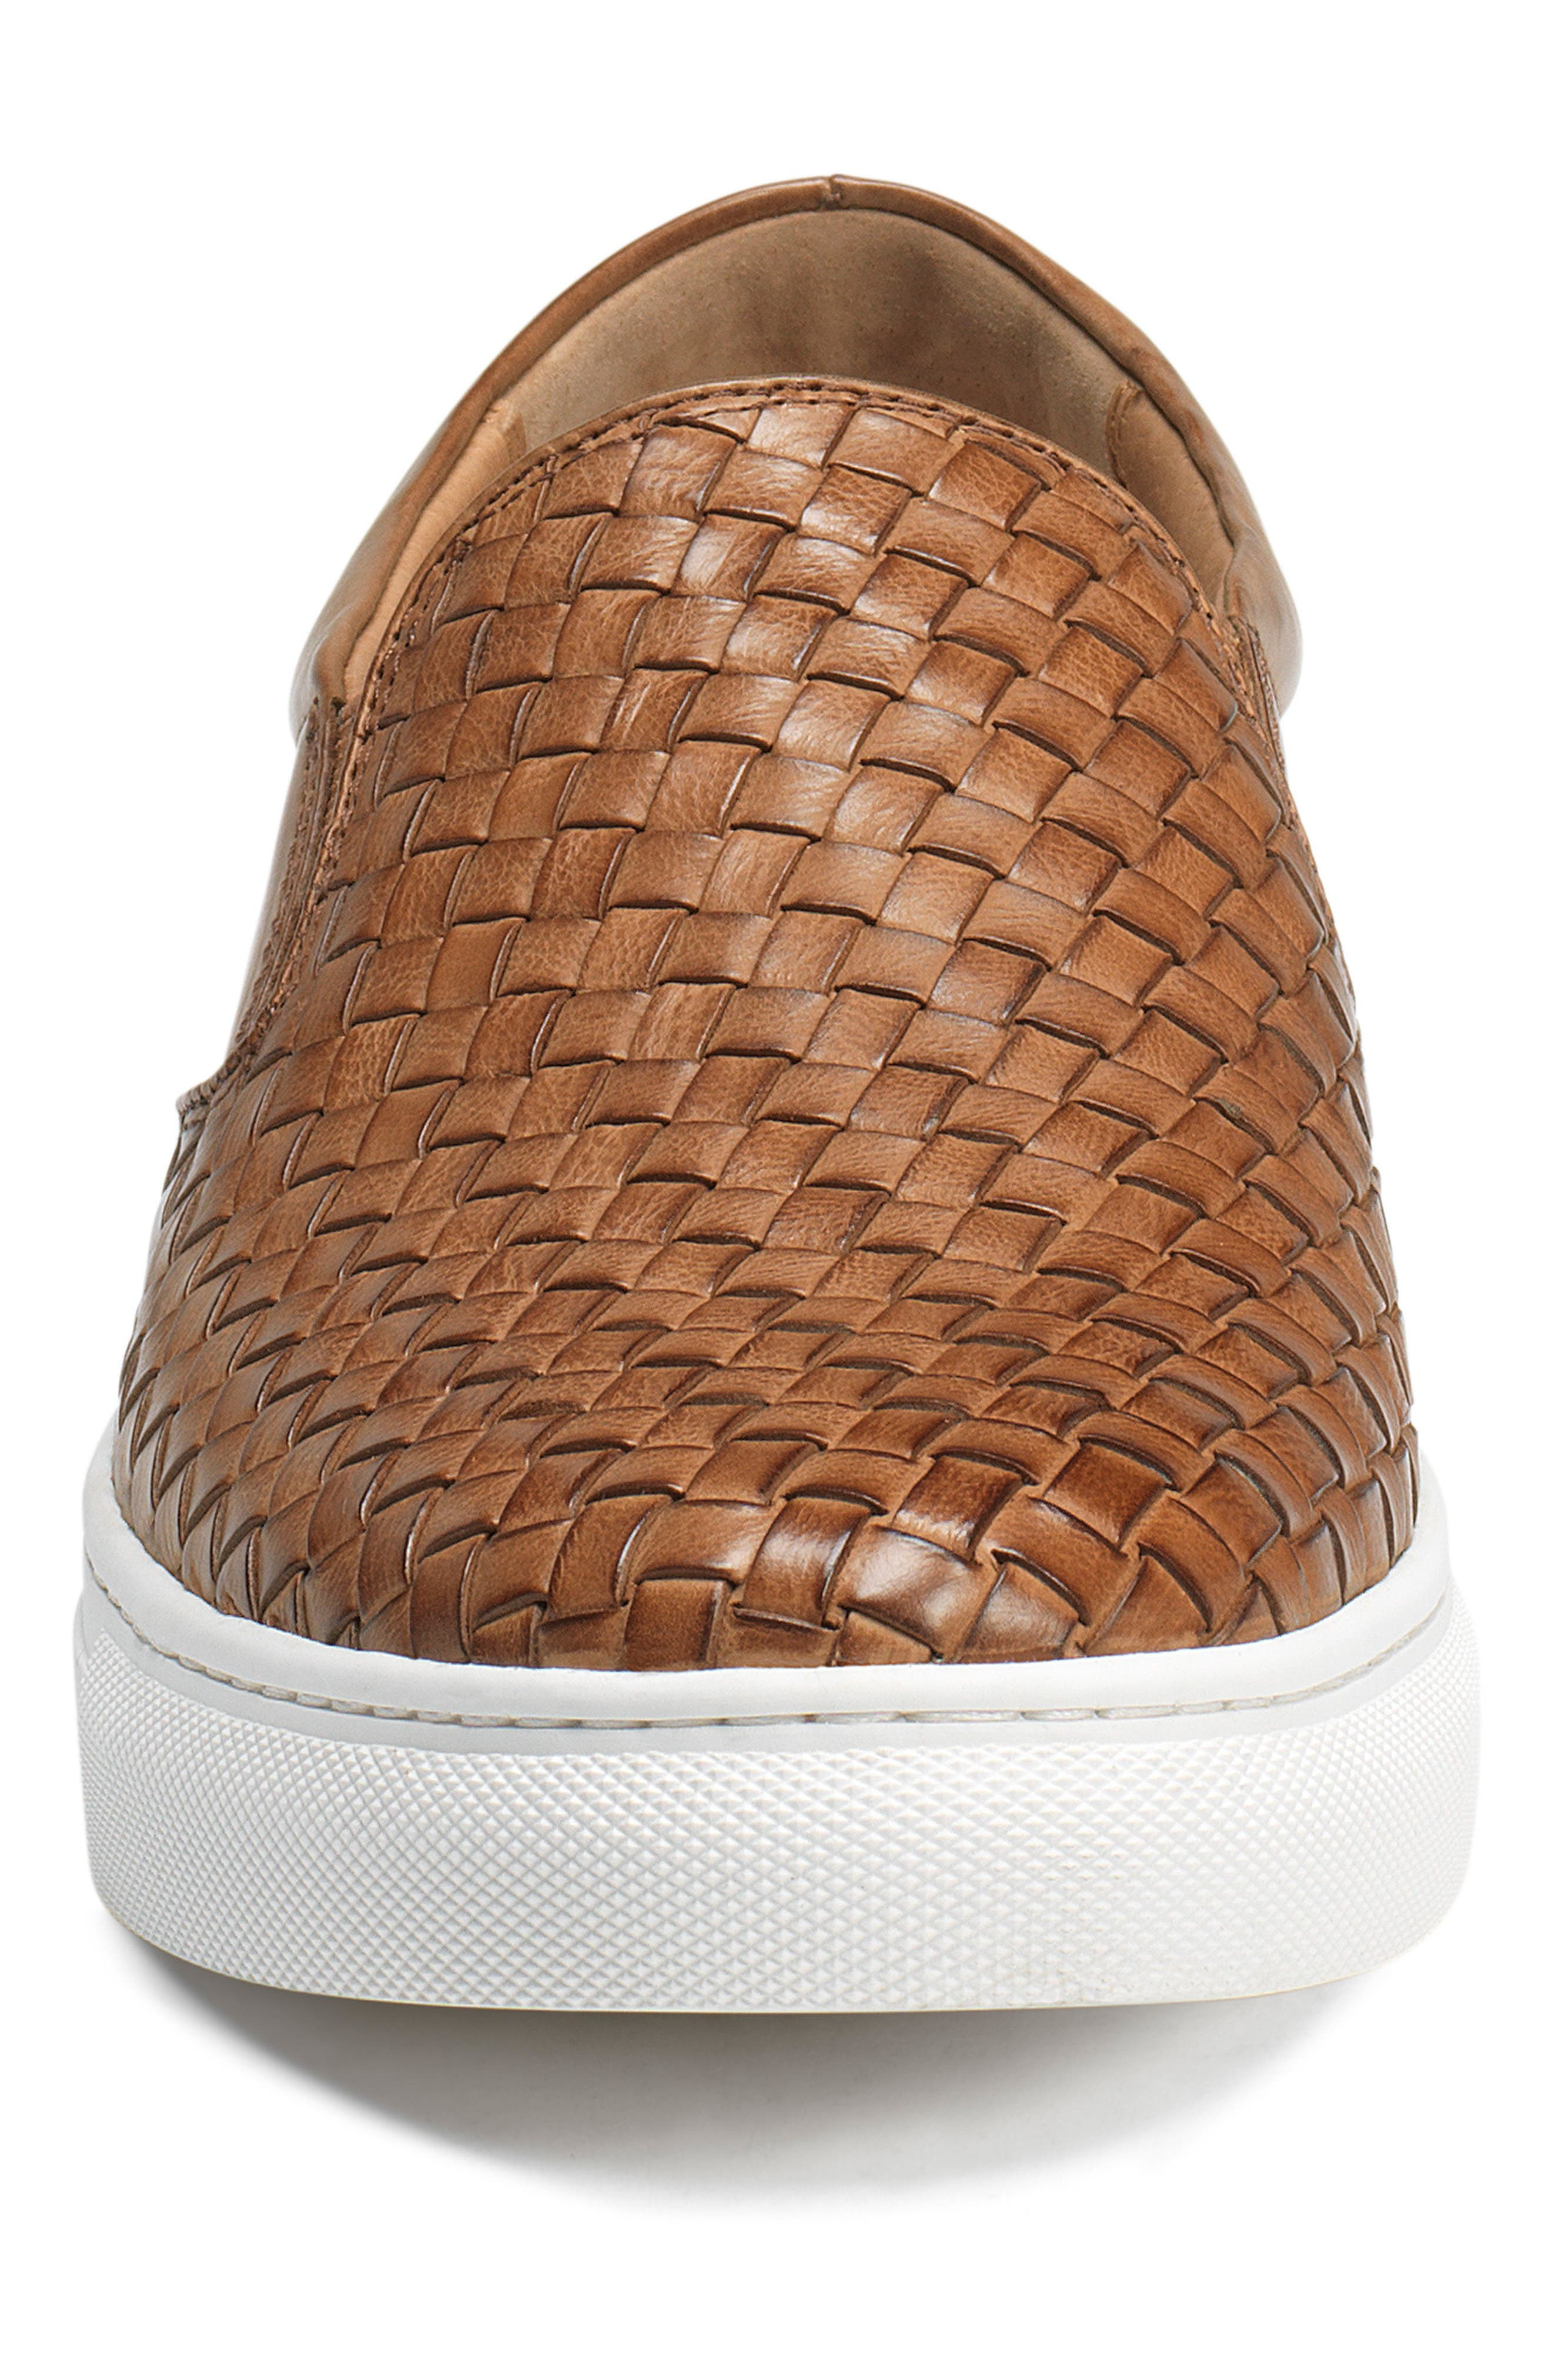 Alex Woven Slip-On Sneaker,                             Alternate thumbnail 4, color,                             Tan Leather